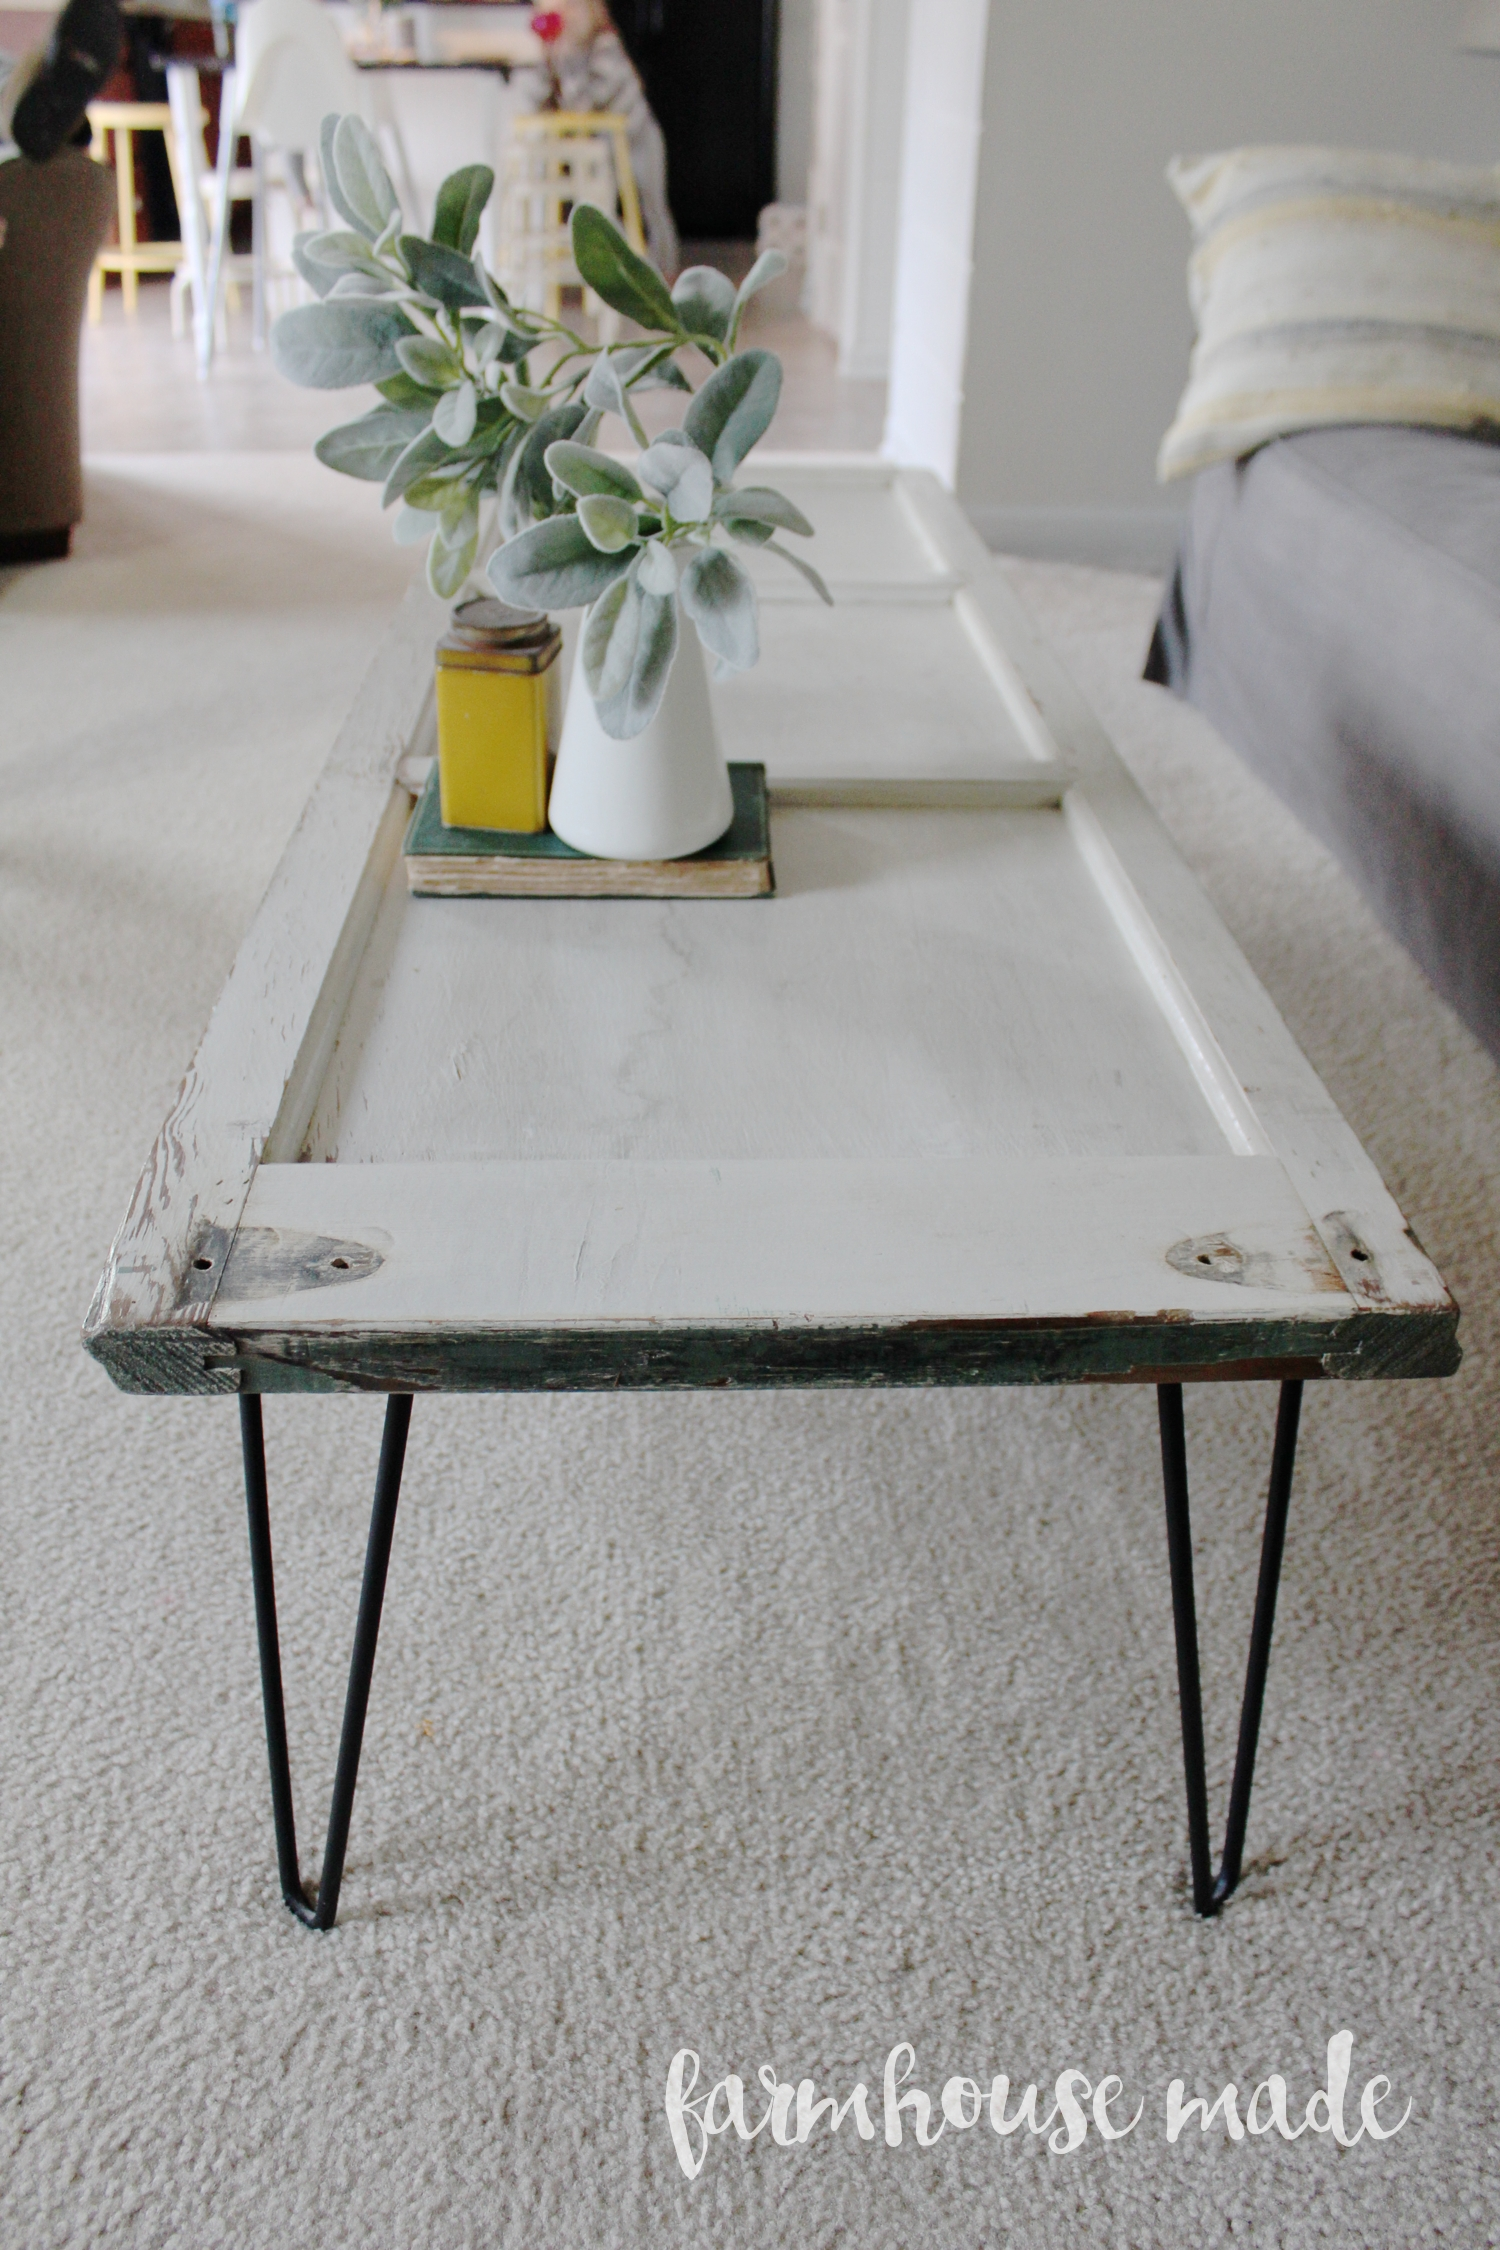 DIY Coffee Table with Hairpin legs from a salvaged shutter! How adorable, you've gotta make this!